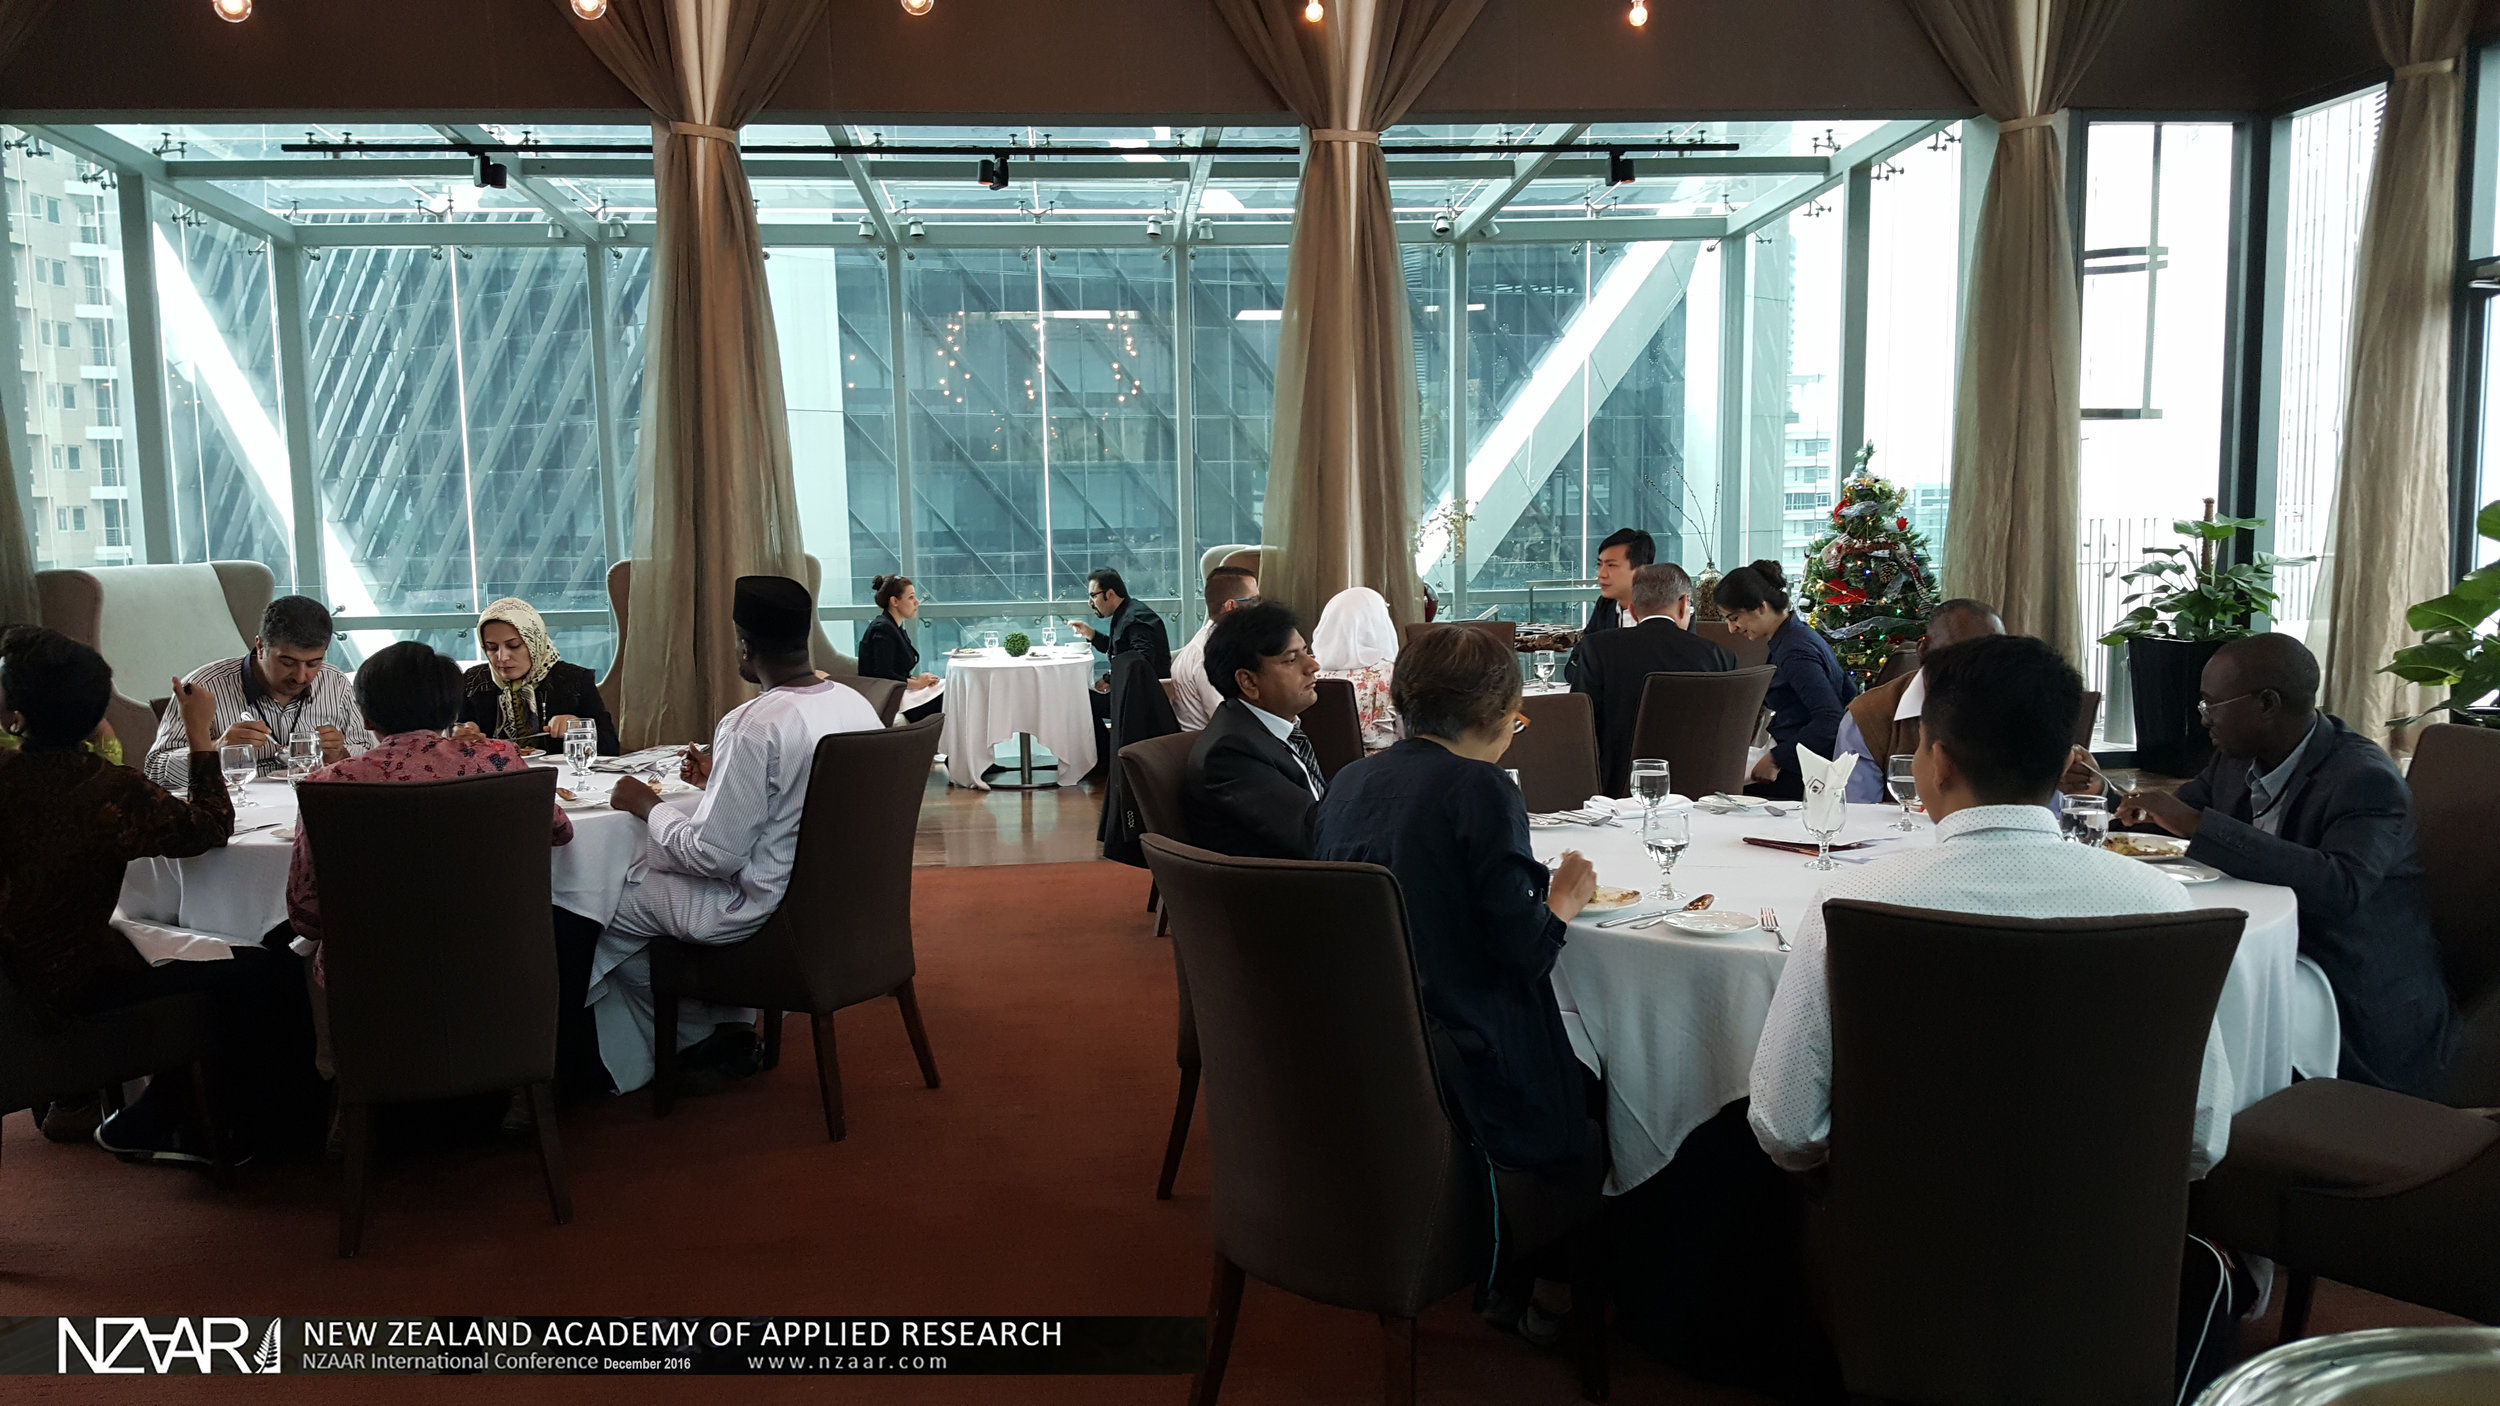 The 2nd International Event Series on Natural and Built Environment, Cities, Sustainability and Advanced Engineering by New Zealand Academy of Applied Research (December 2016 - GTower Hotel, Malaysia)